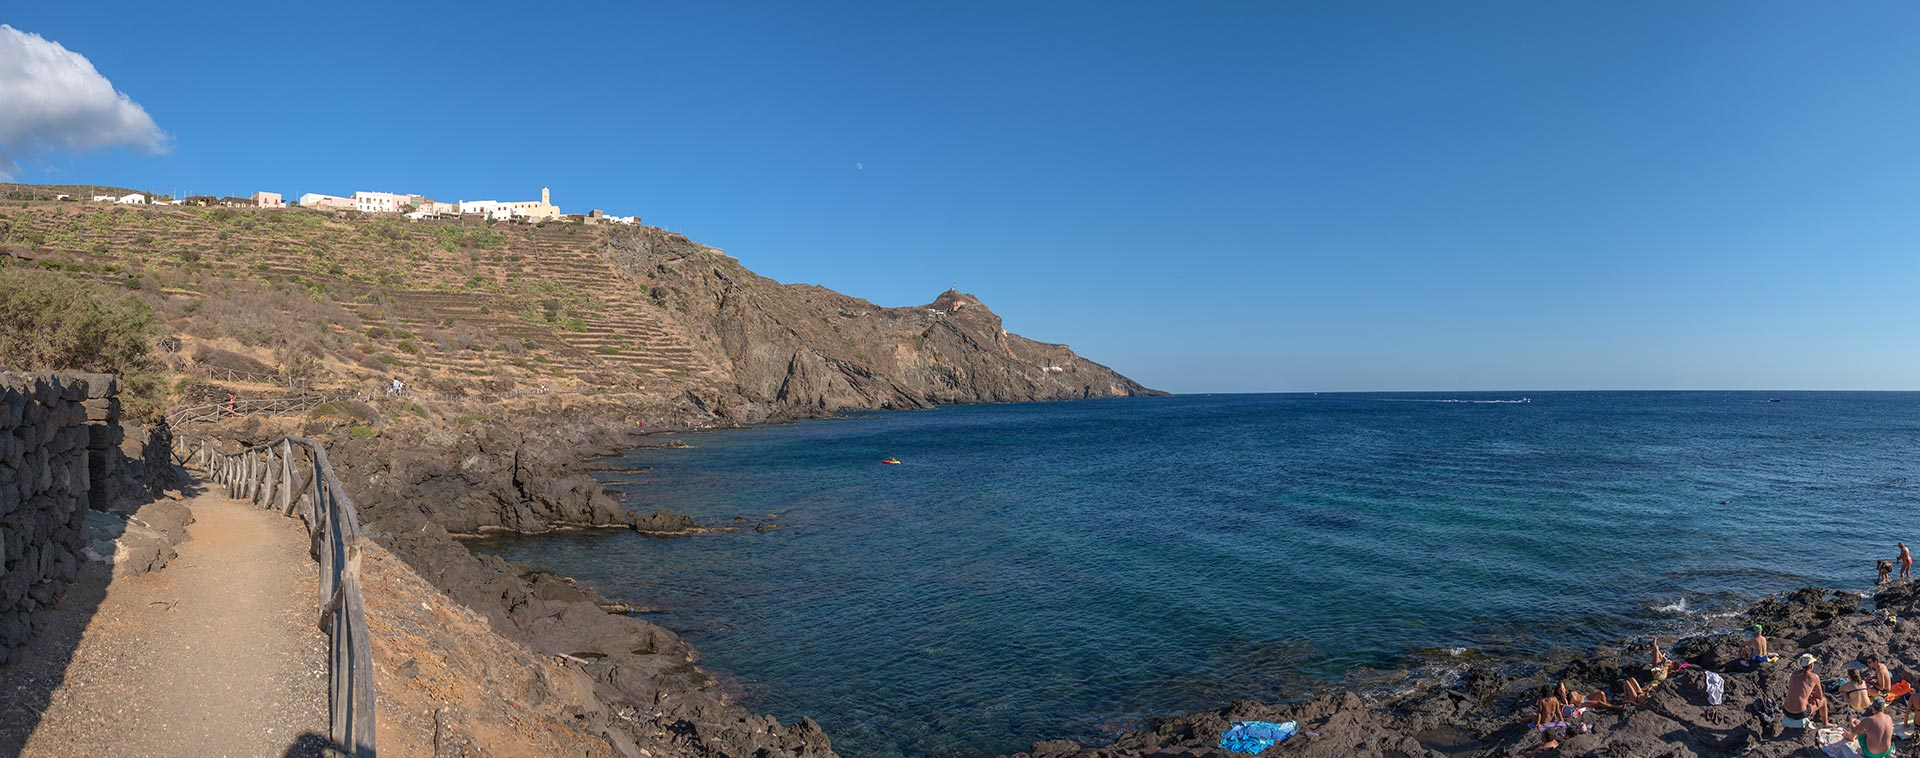 Sunniest Places in Italy - Pantelleria